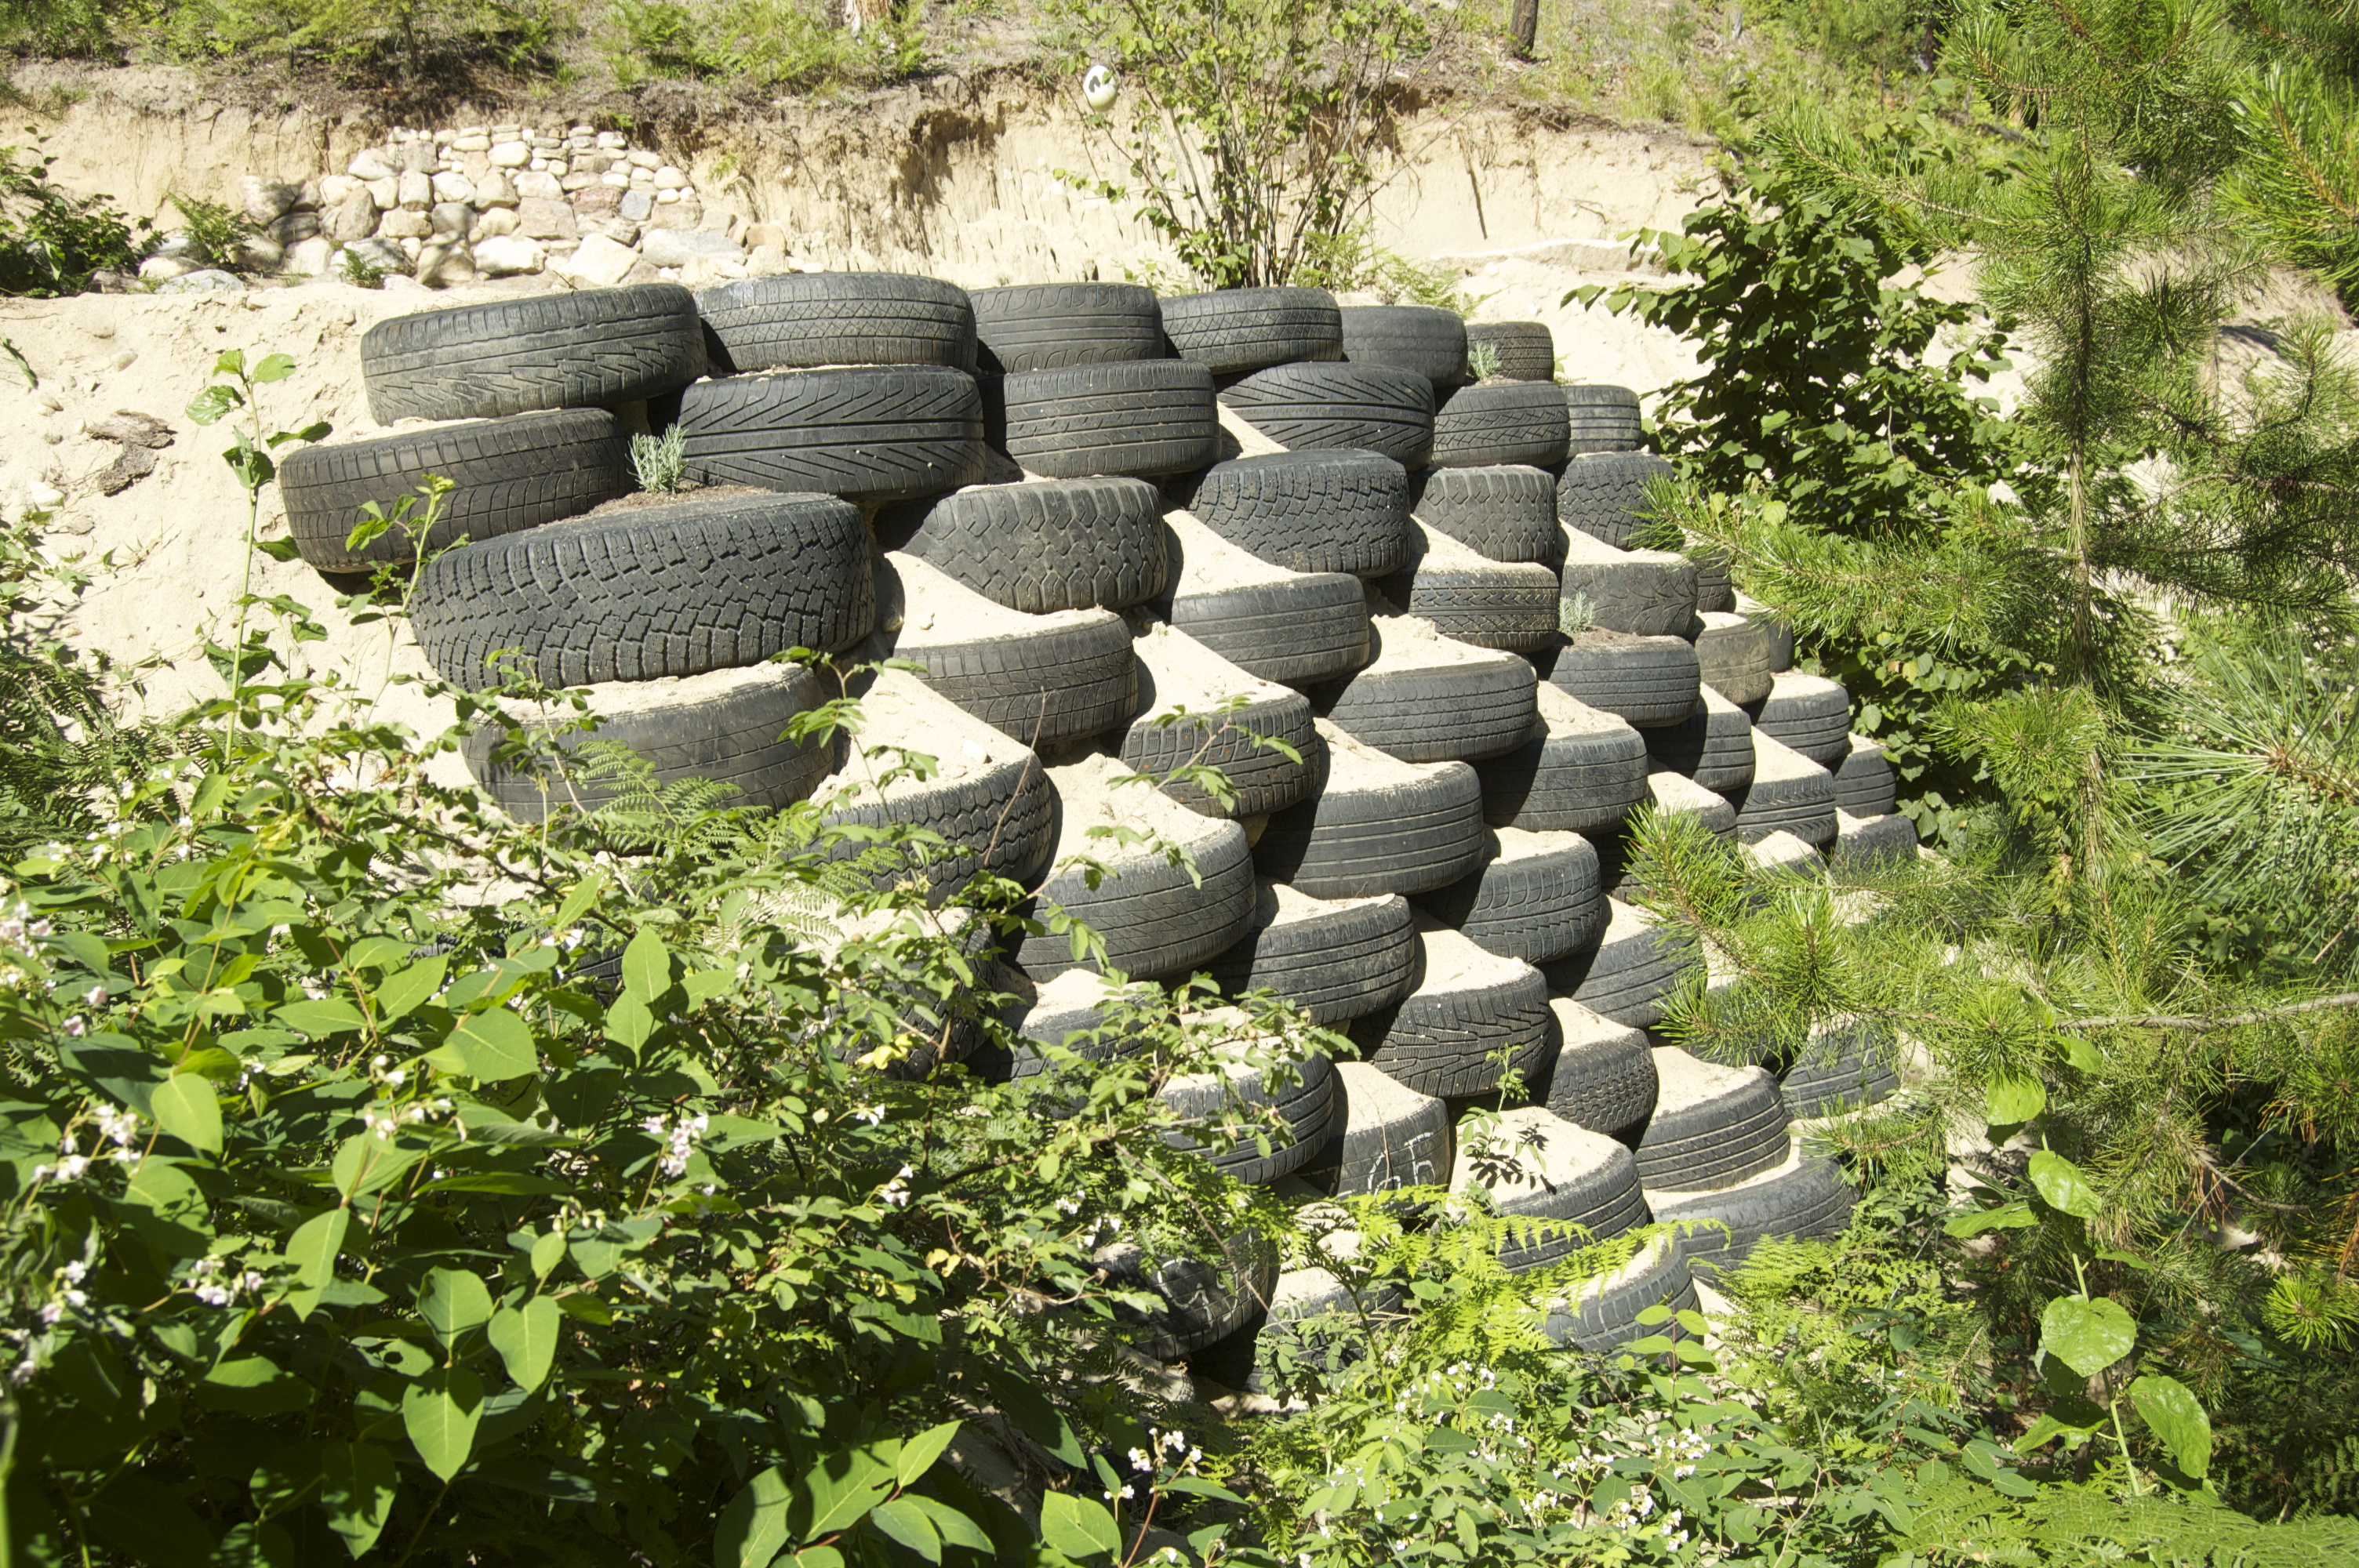 Building Tire Retaining Wall On Sand Earthship Forum At